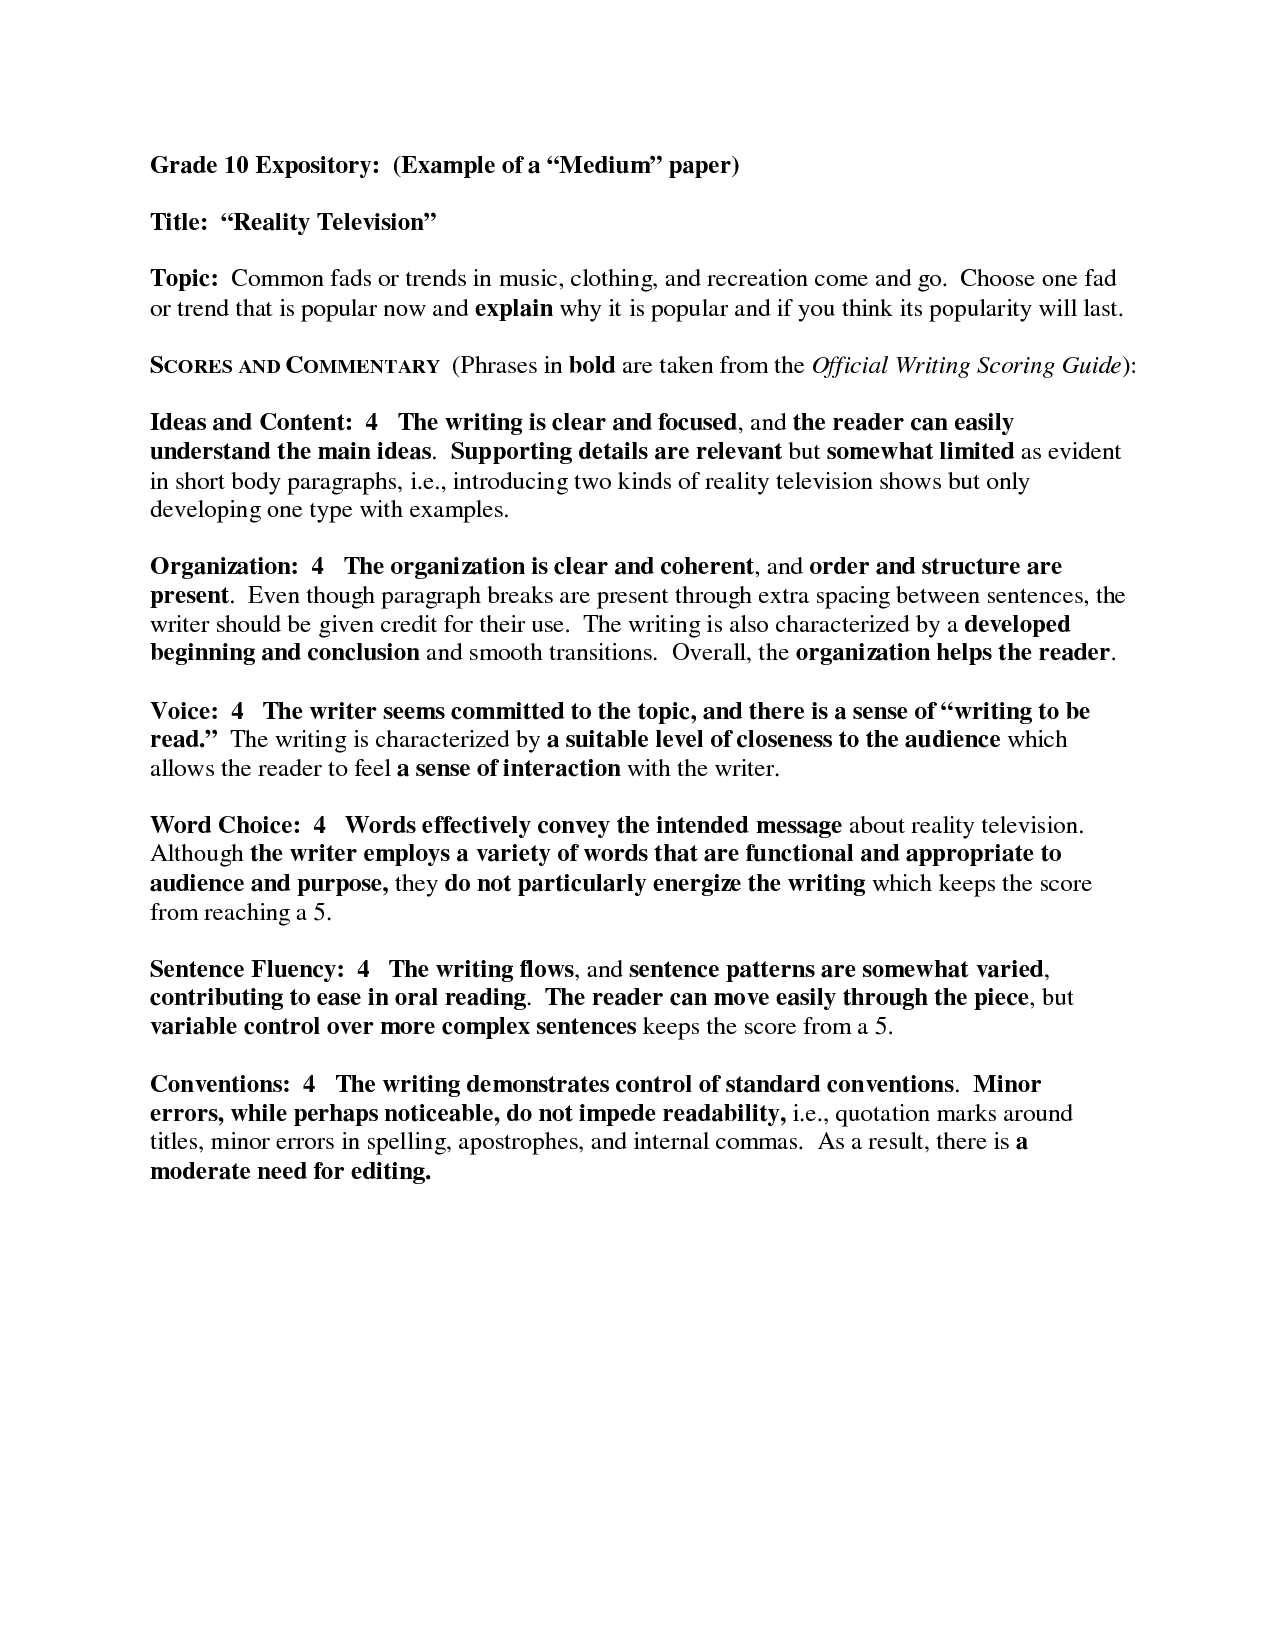 A 4th grade expository student writing sample | expository writing.